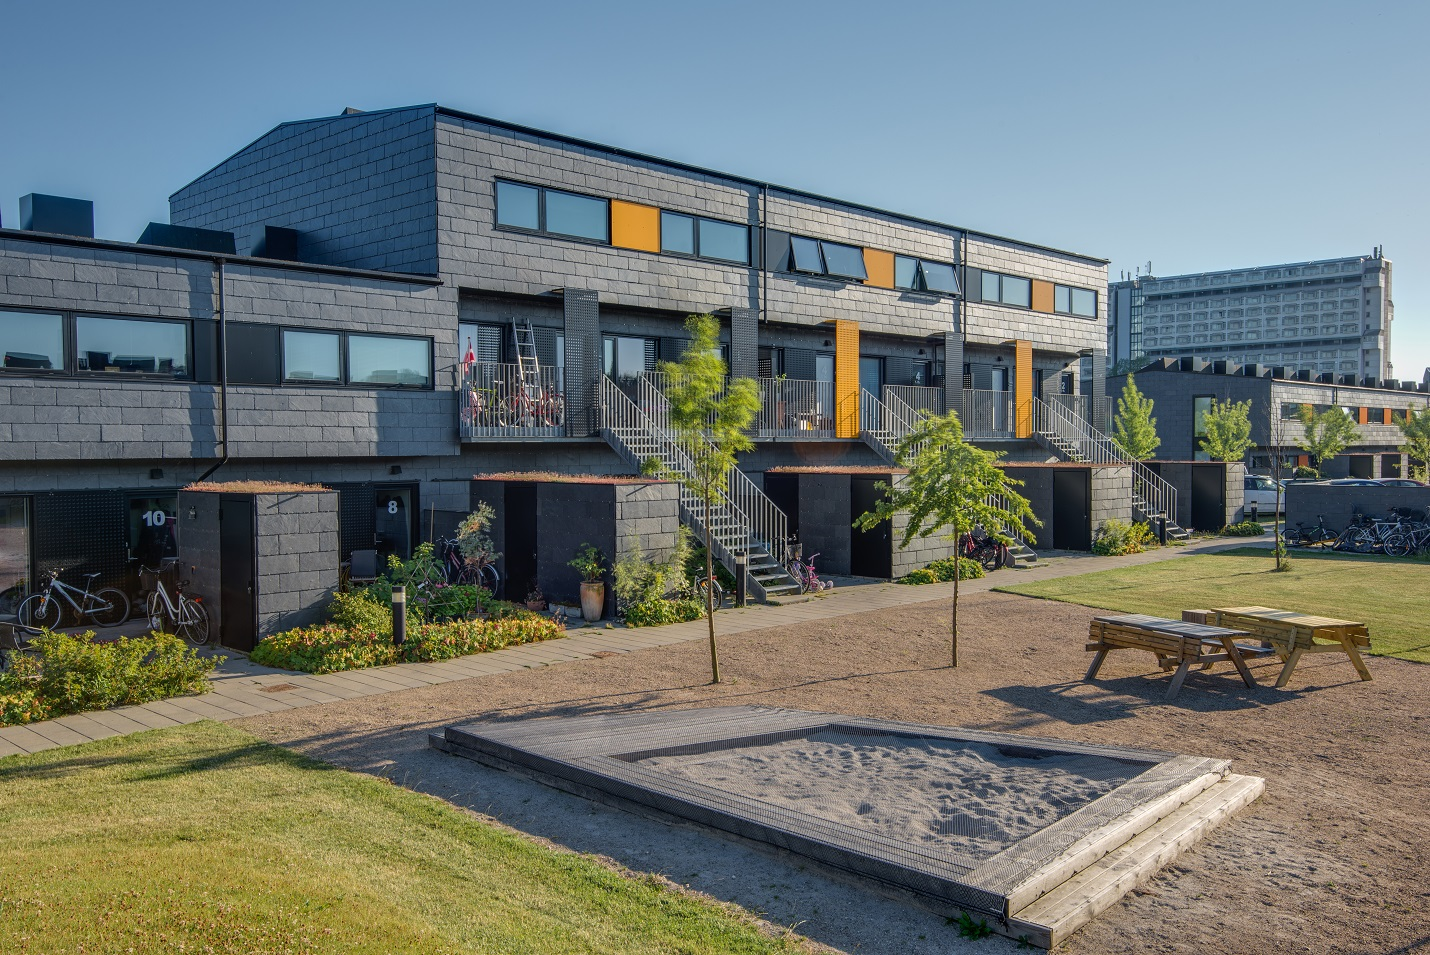 Reasons To Choose Natural Slate For Sustainable Building - Green Building Elements